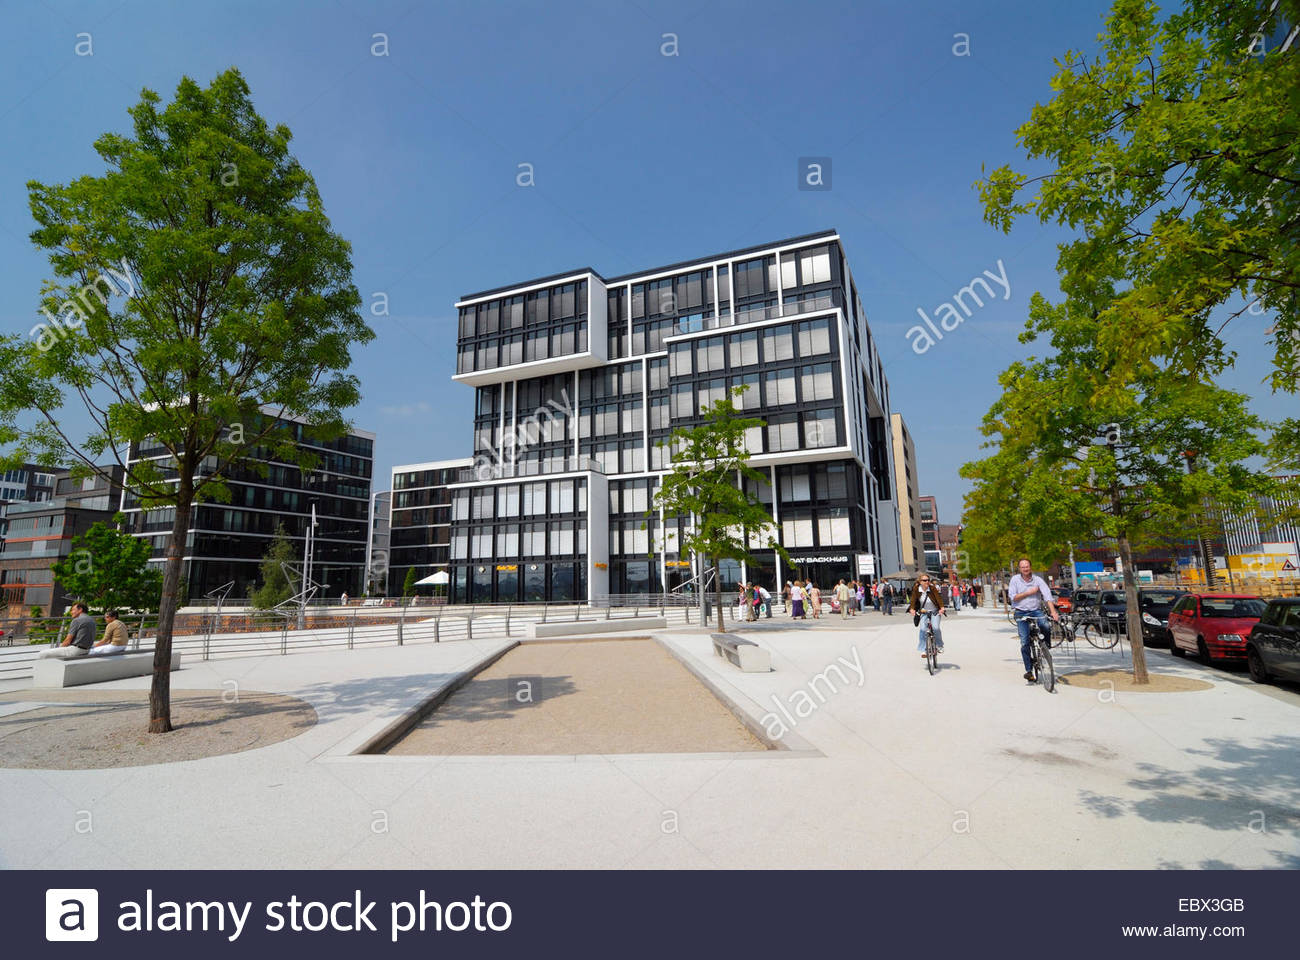 hamburg hafencity stockfotos hamburg hafencity bilder alamy. Black Bedroom Furniture Sets. Home Design Ideas